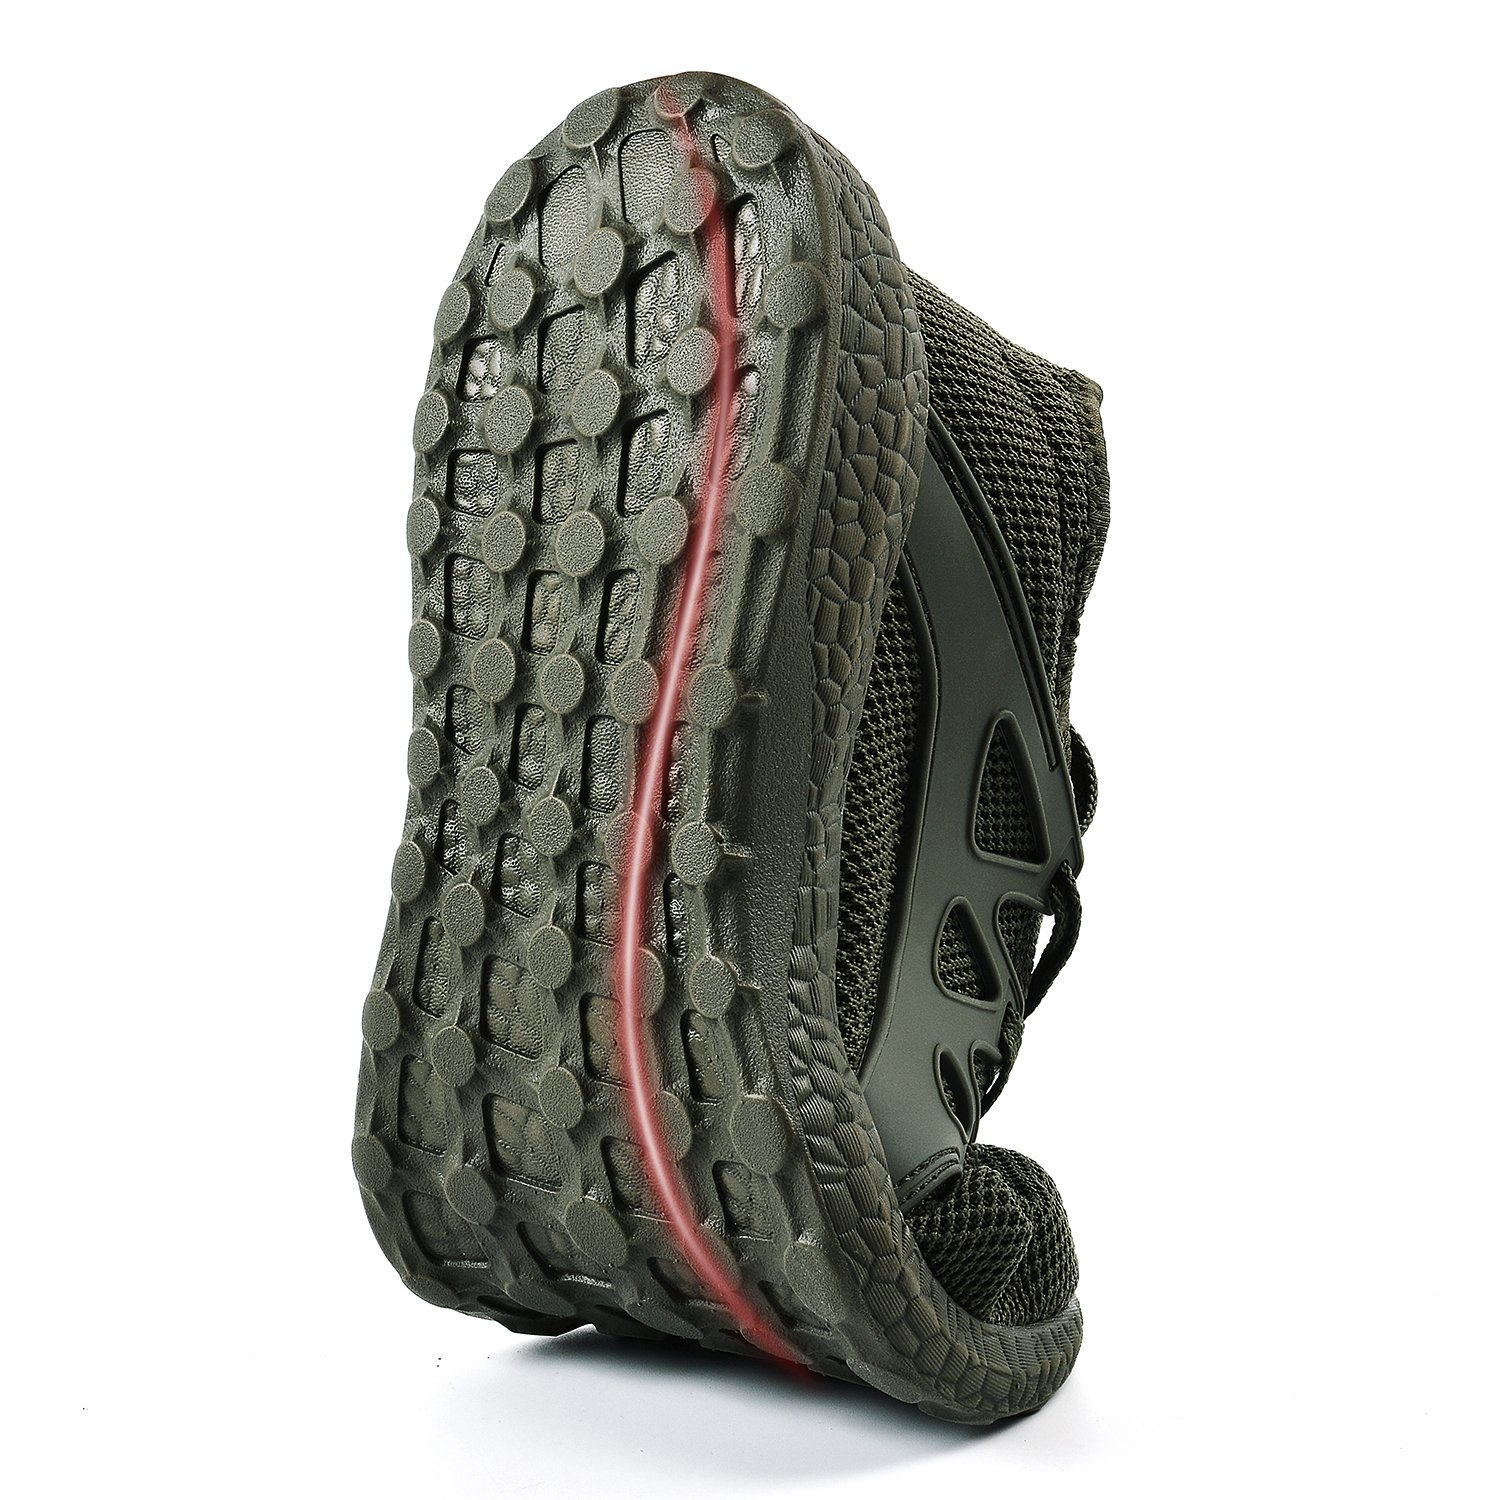 MARSVOVO Mens Sneakers Lightweight Casual Walking Shoes Gym Breathable Mesh Sports Shoes